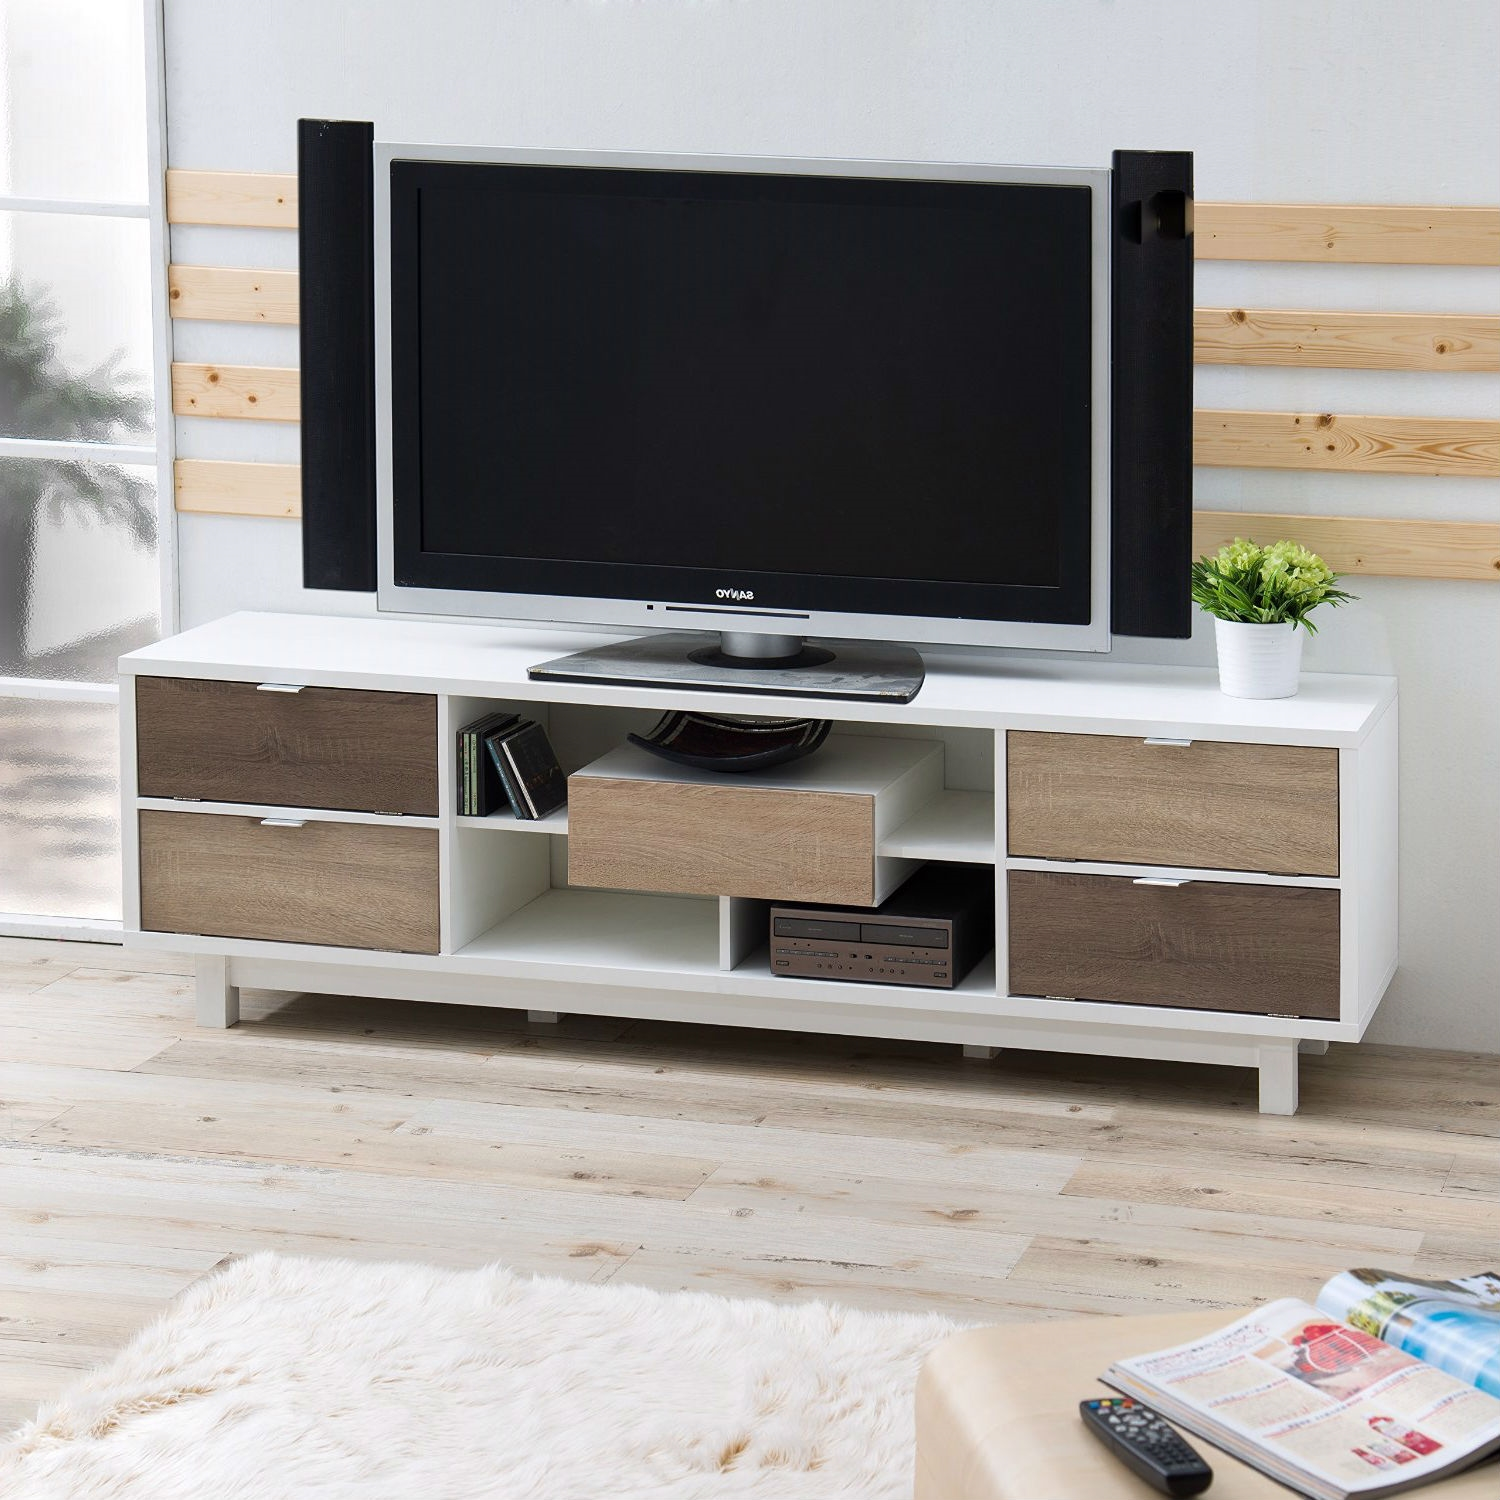 Modern 70inch White TV Stand Entertainment Center with Natural Wood